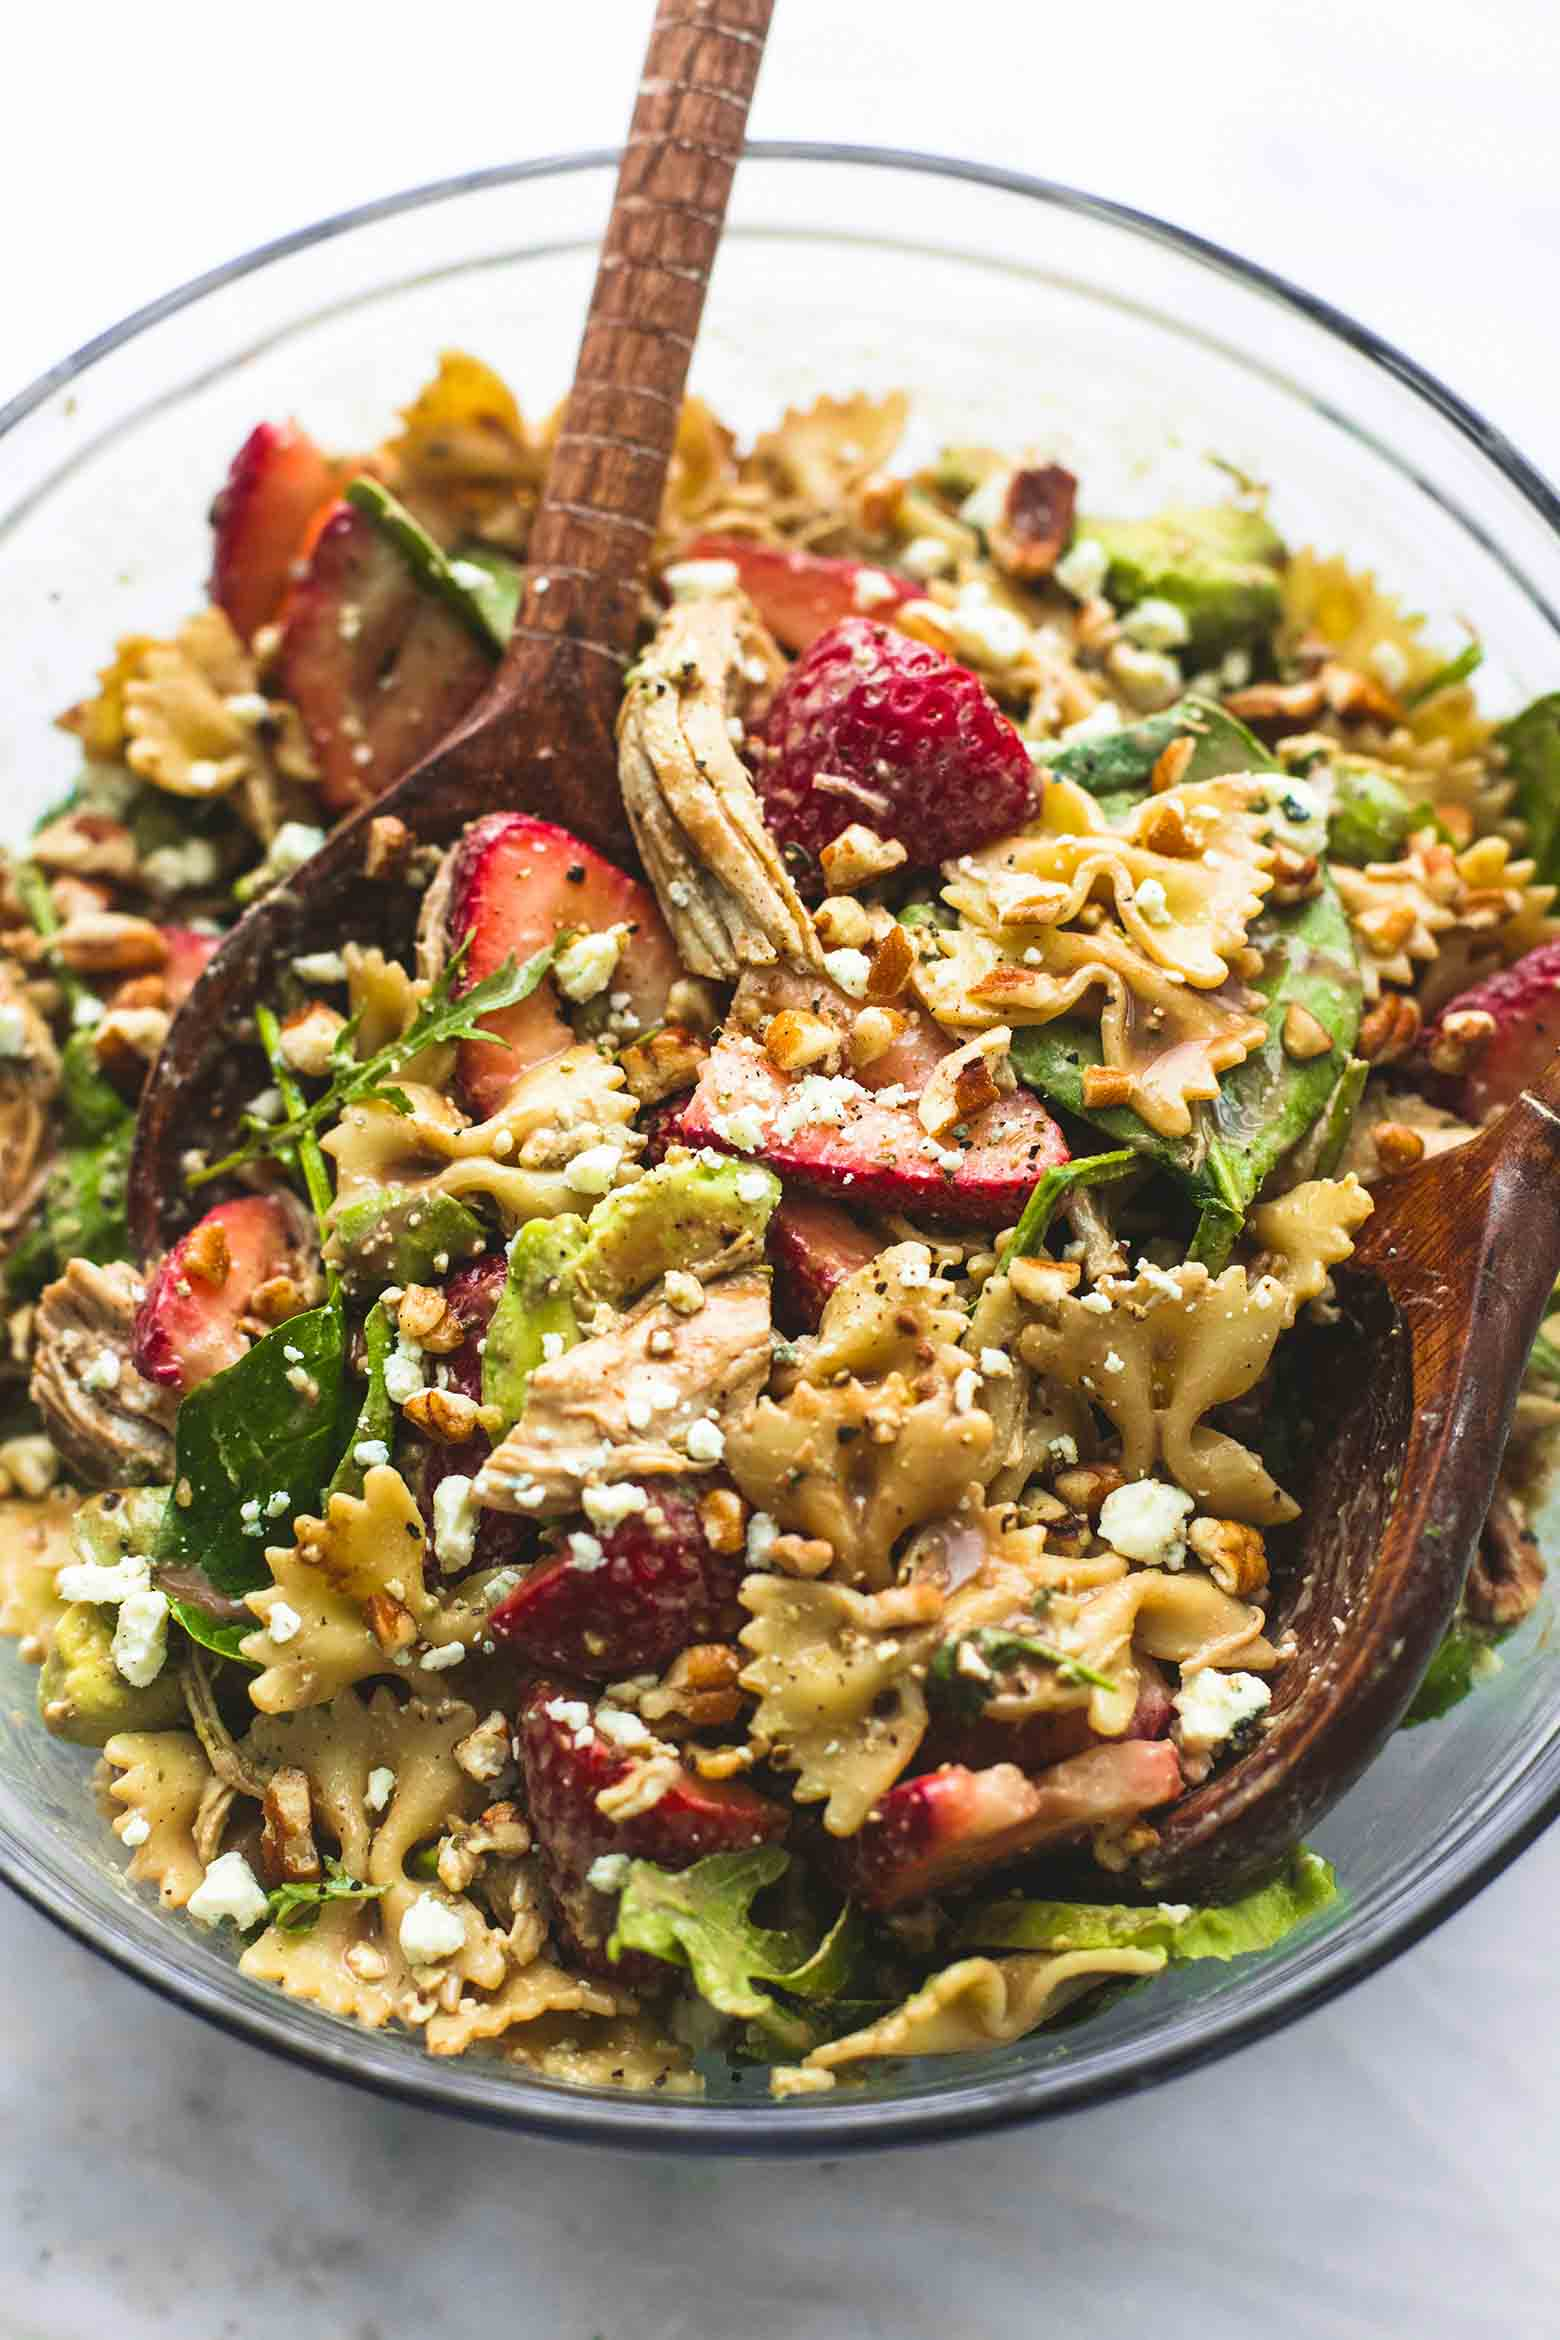 Strawberry Avocado Chicken Pasta Salad from lecremedelacrumb.com on foodiecrush.com